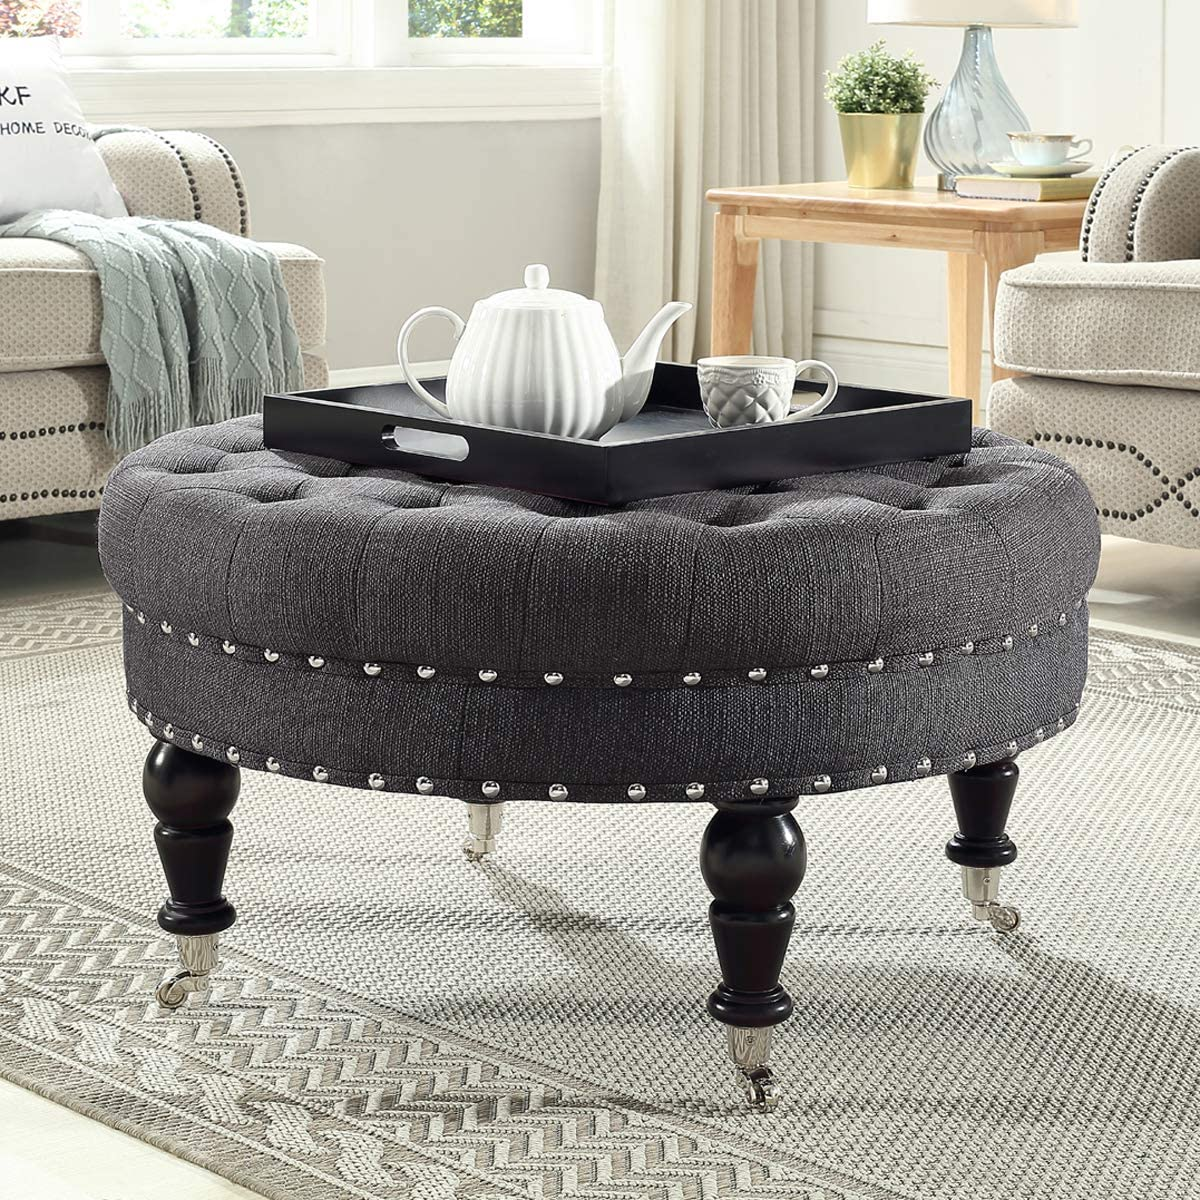 - Amazon.com: 24KF Large Round Upholstered Tufted Button Linen Ottoman Coffee  Table, Large Footrest Bench With Caters Rolling Wheels-Charcoal Gray:  Kitchen & Dining